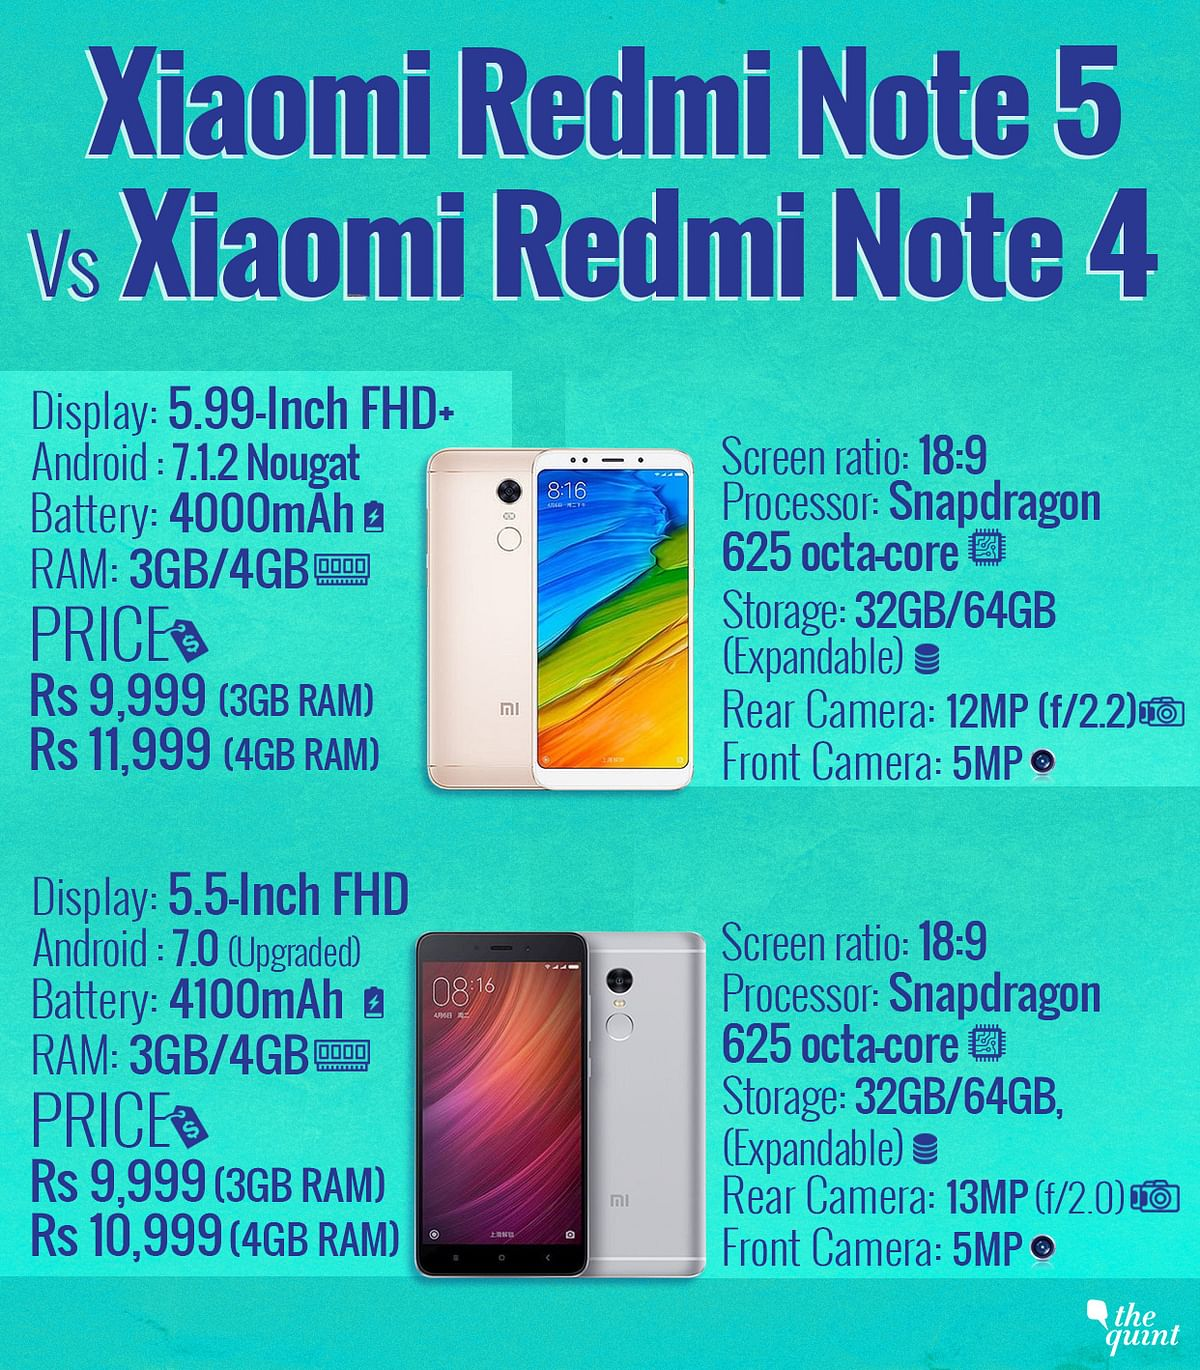 Specs comparison between Redmi Note 4 and Redmi Note 5.